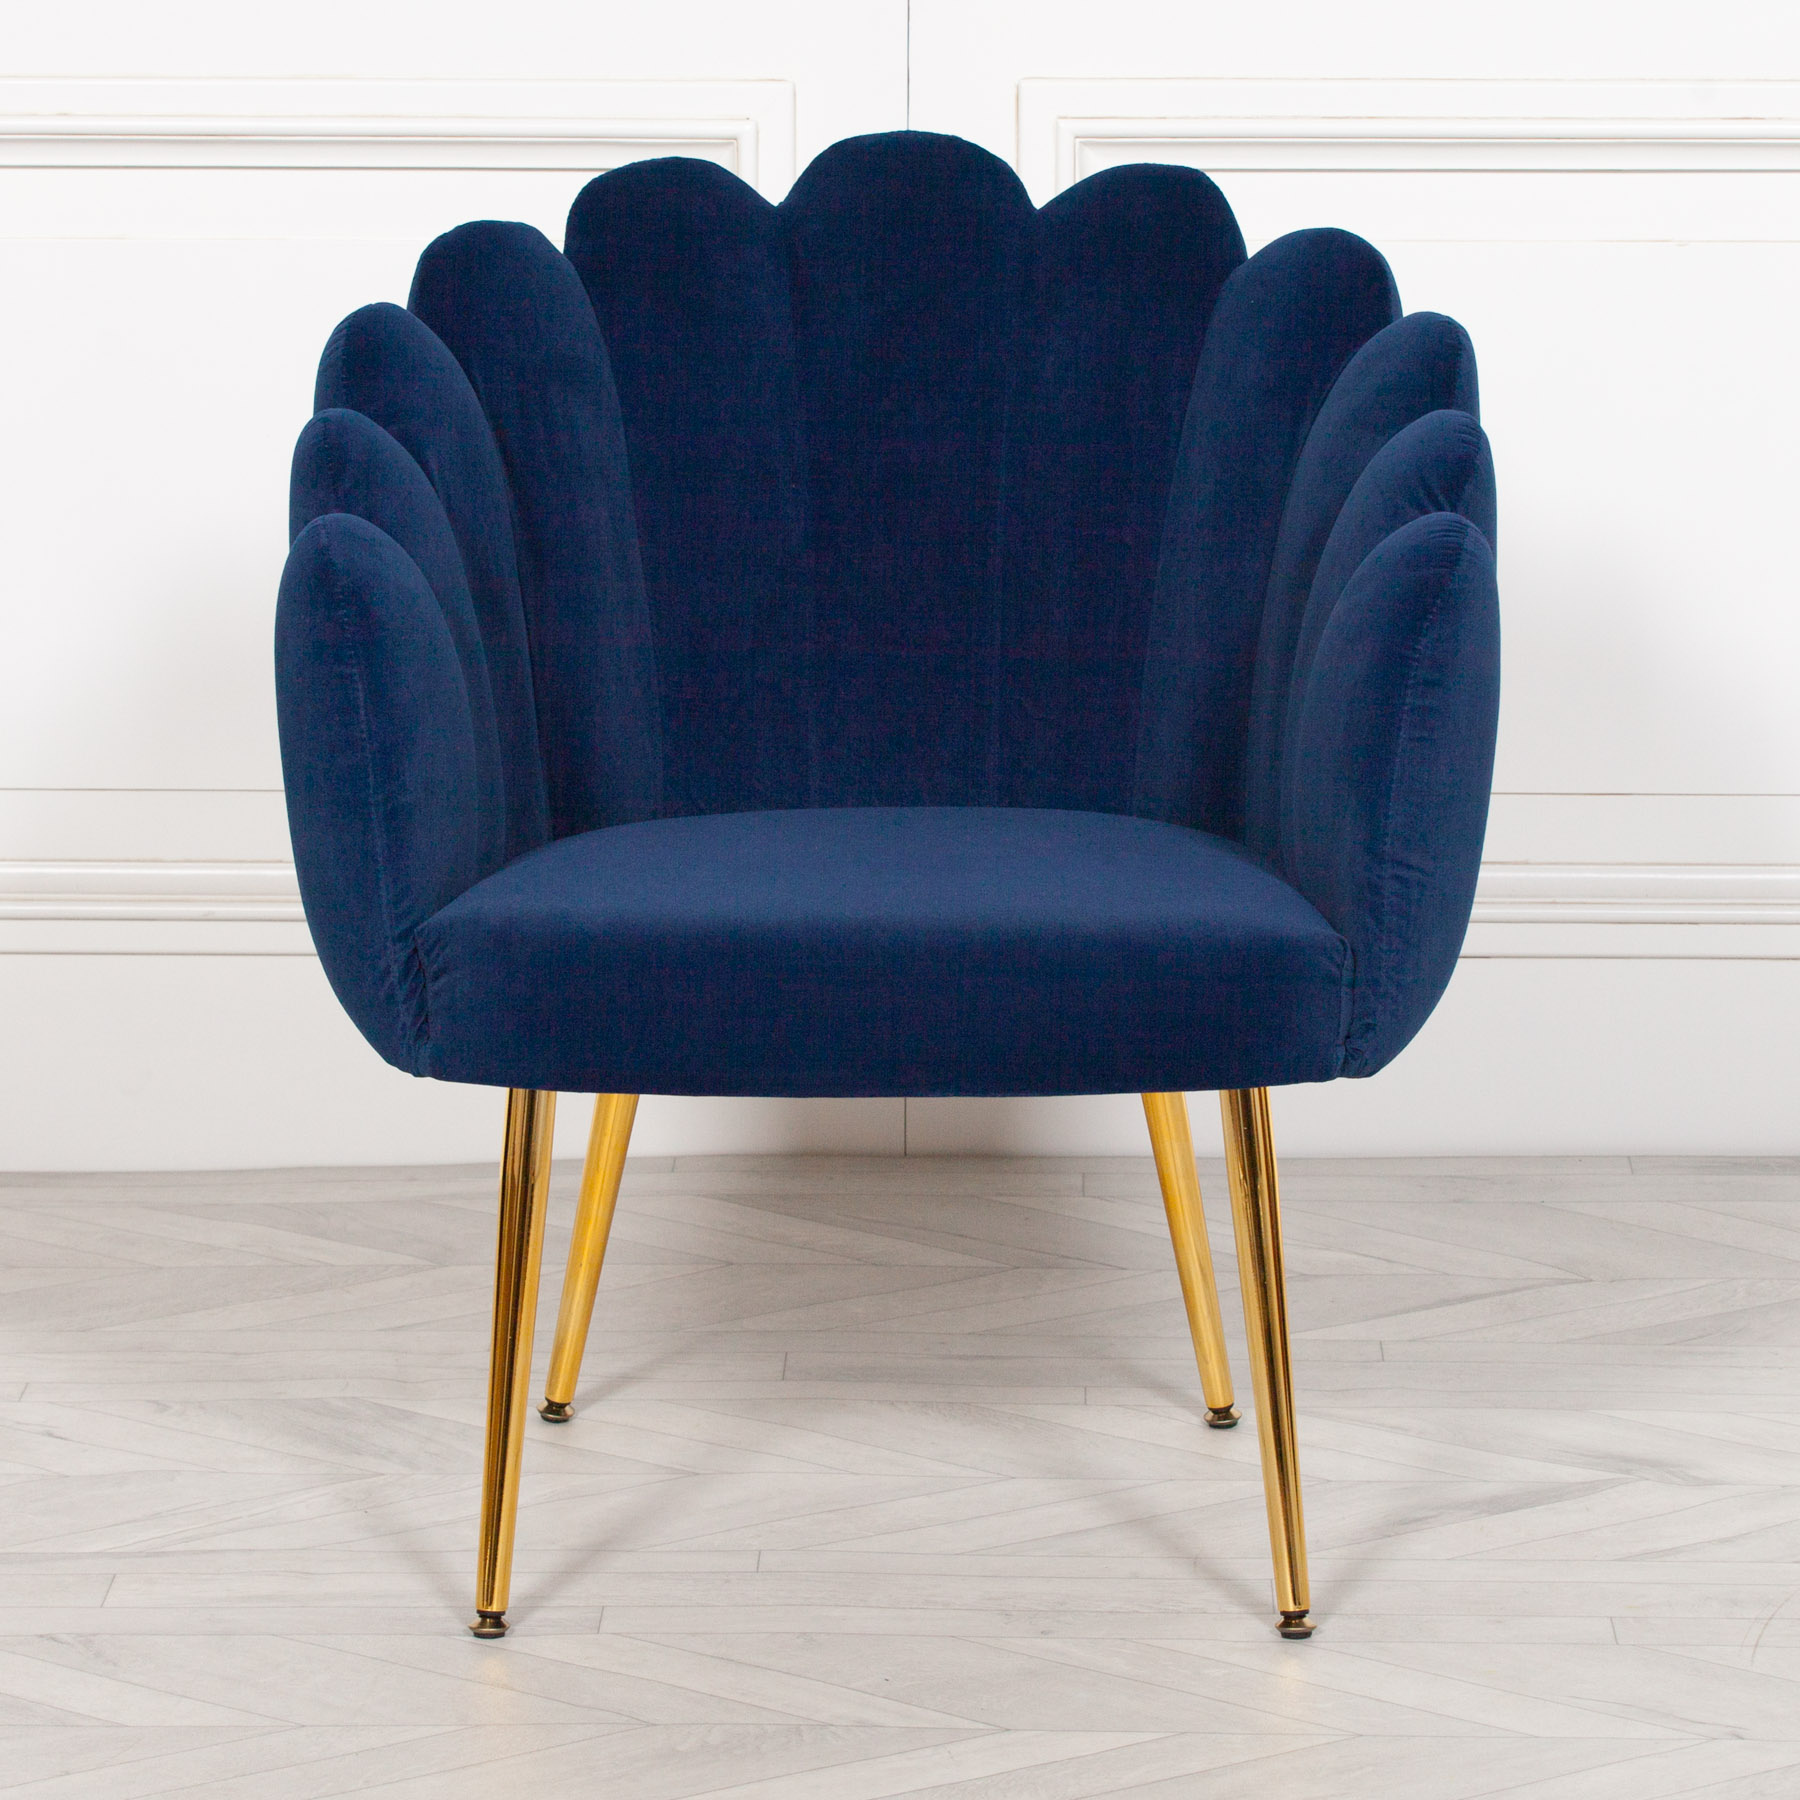 Deco Blue Dining / Bedroom Chair